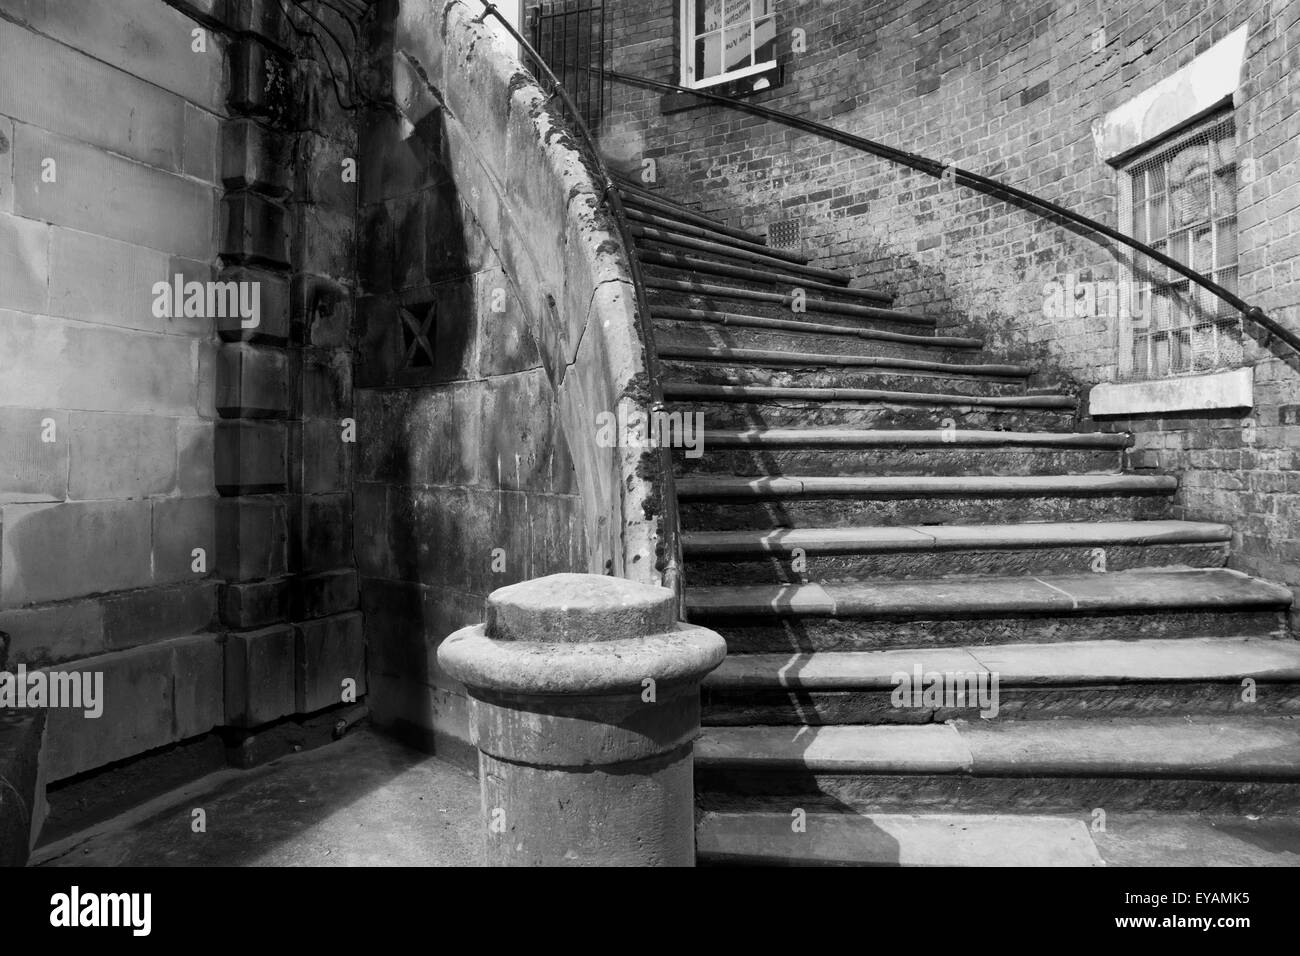 curving stone steps in a night-time urban setting - Stock Image